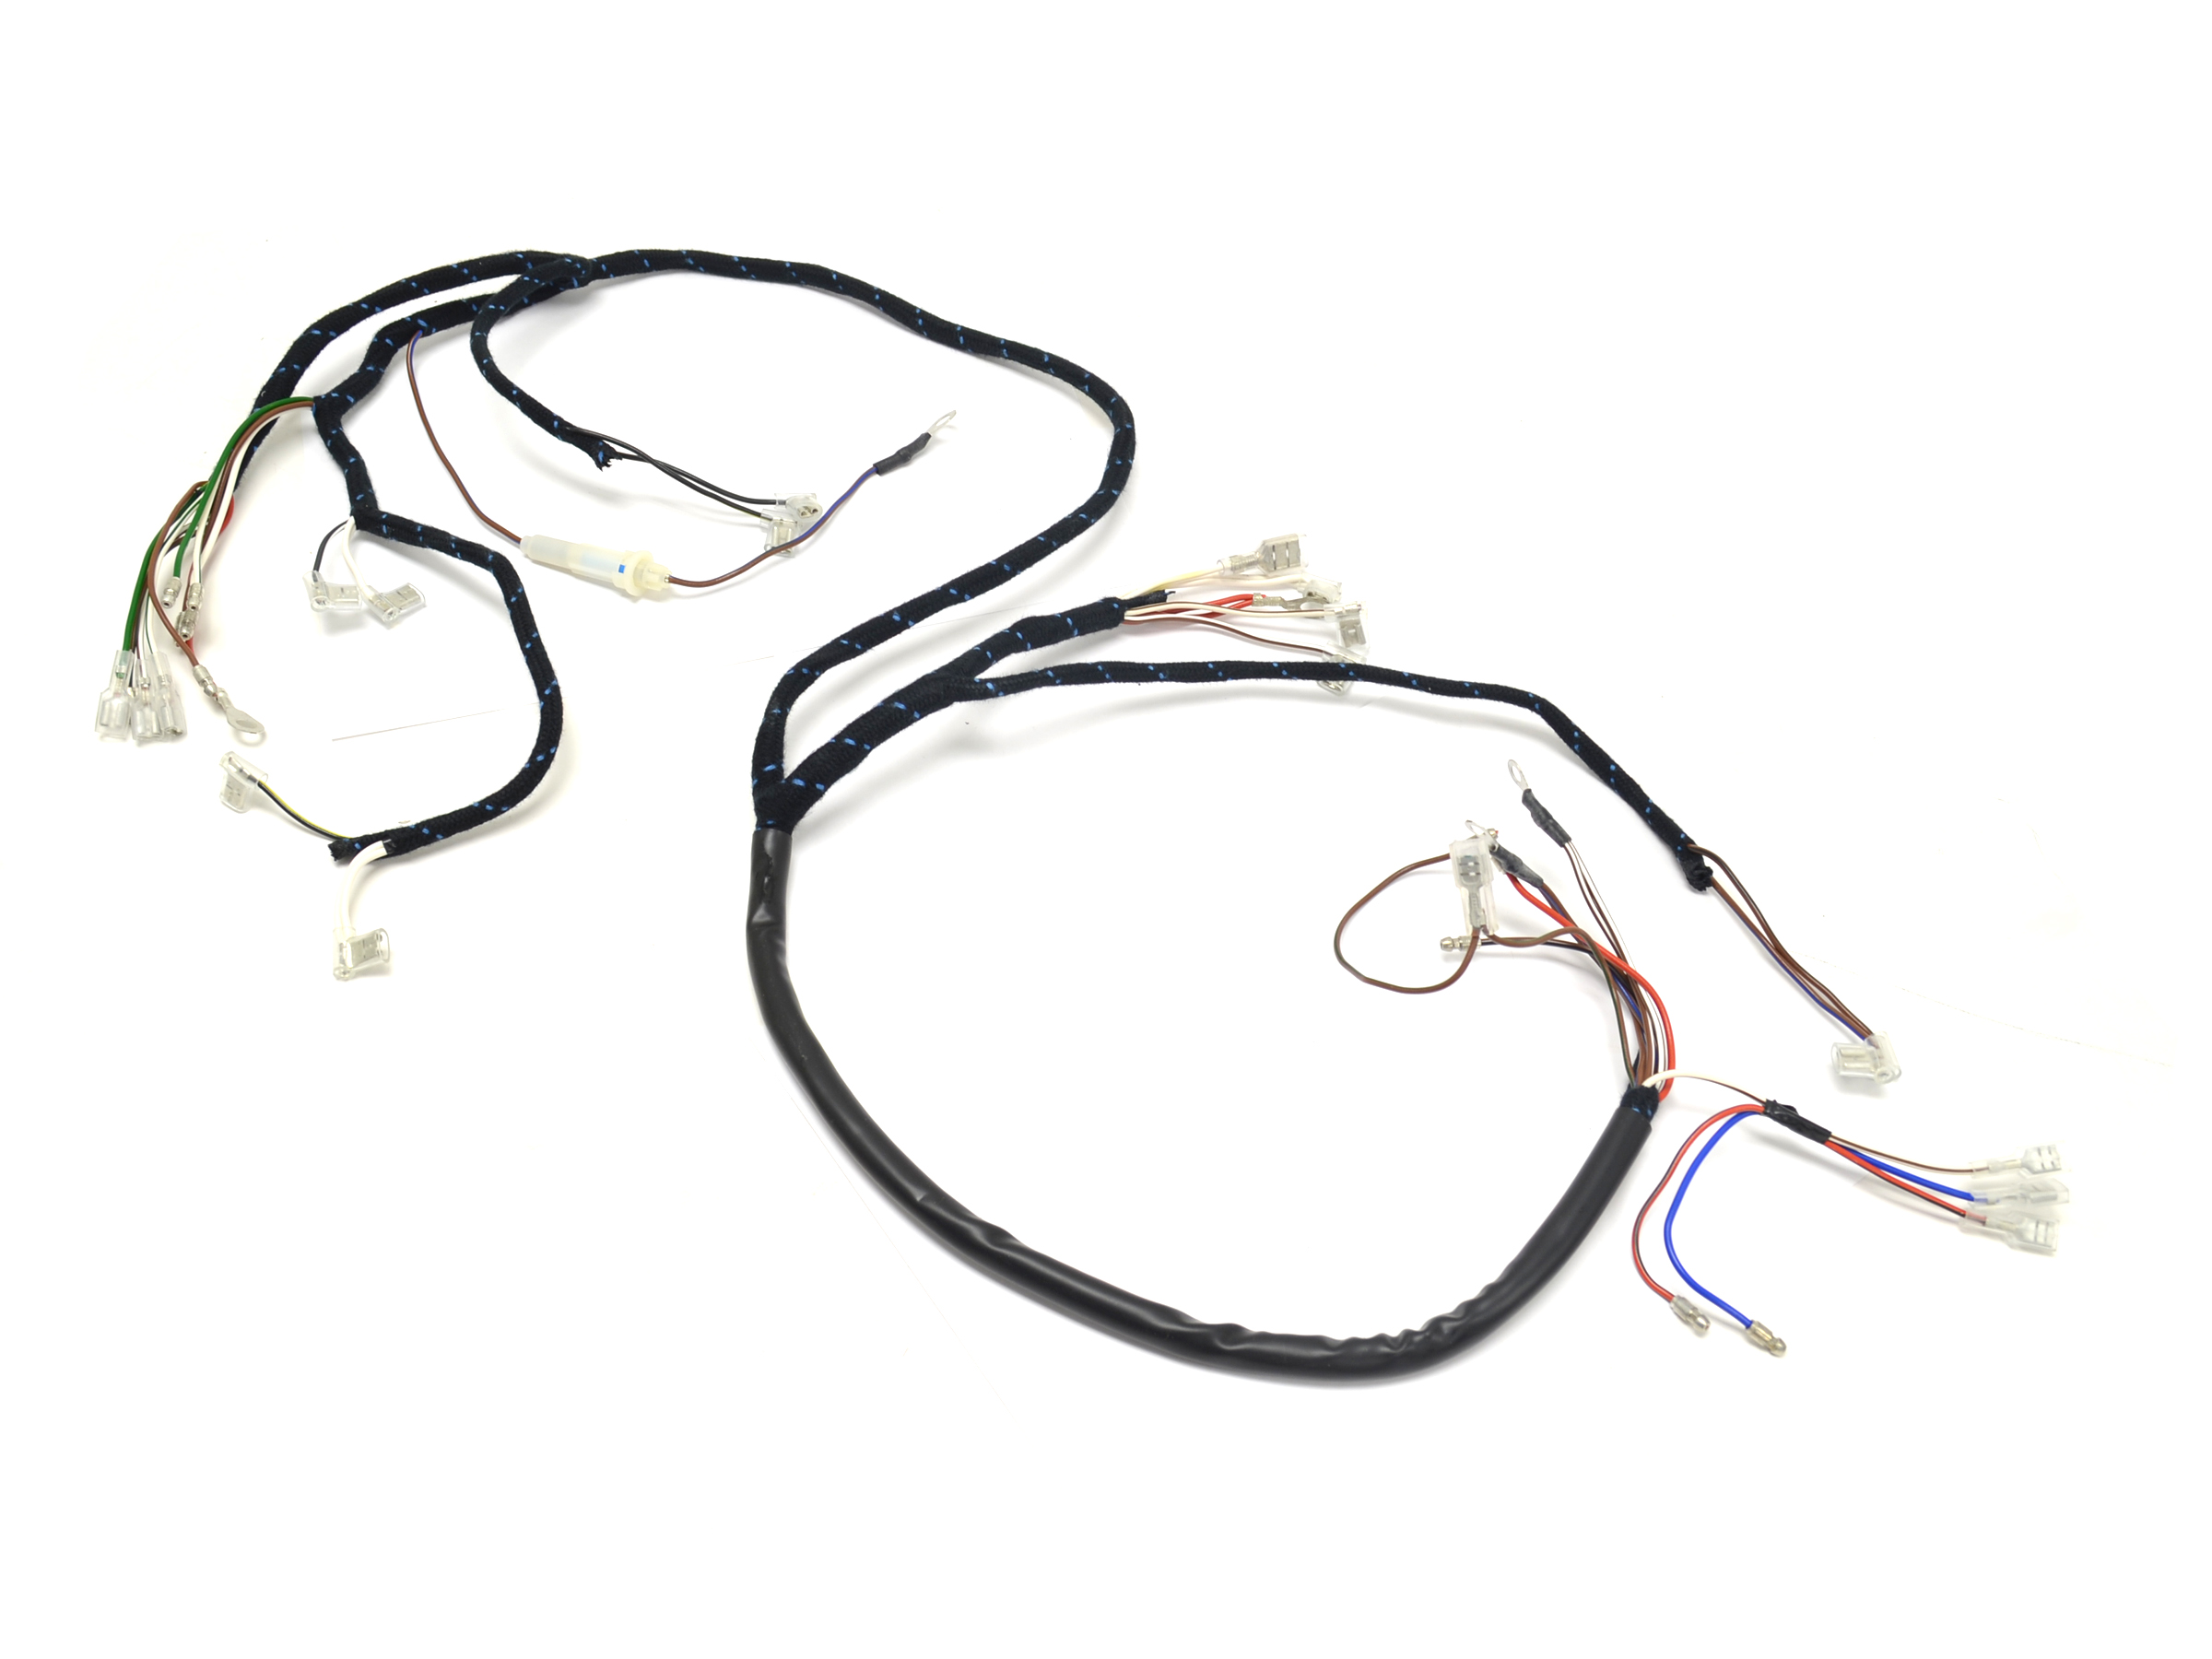 BSA 1968-69 A50 A65 English-Made 12-Volt Wiring Harness